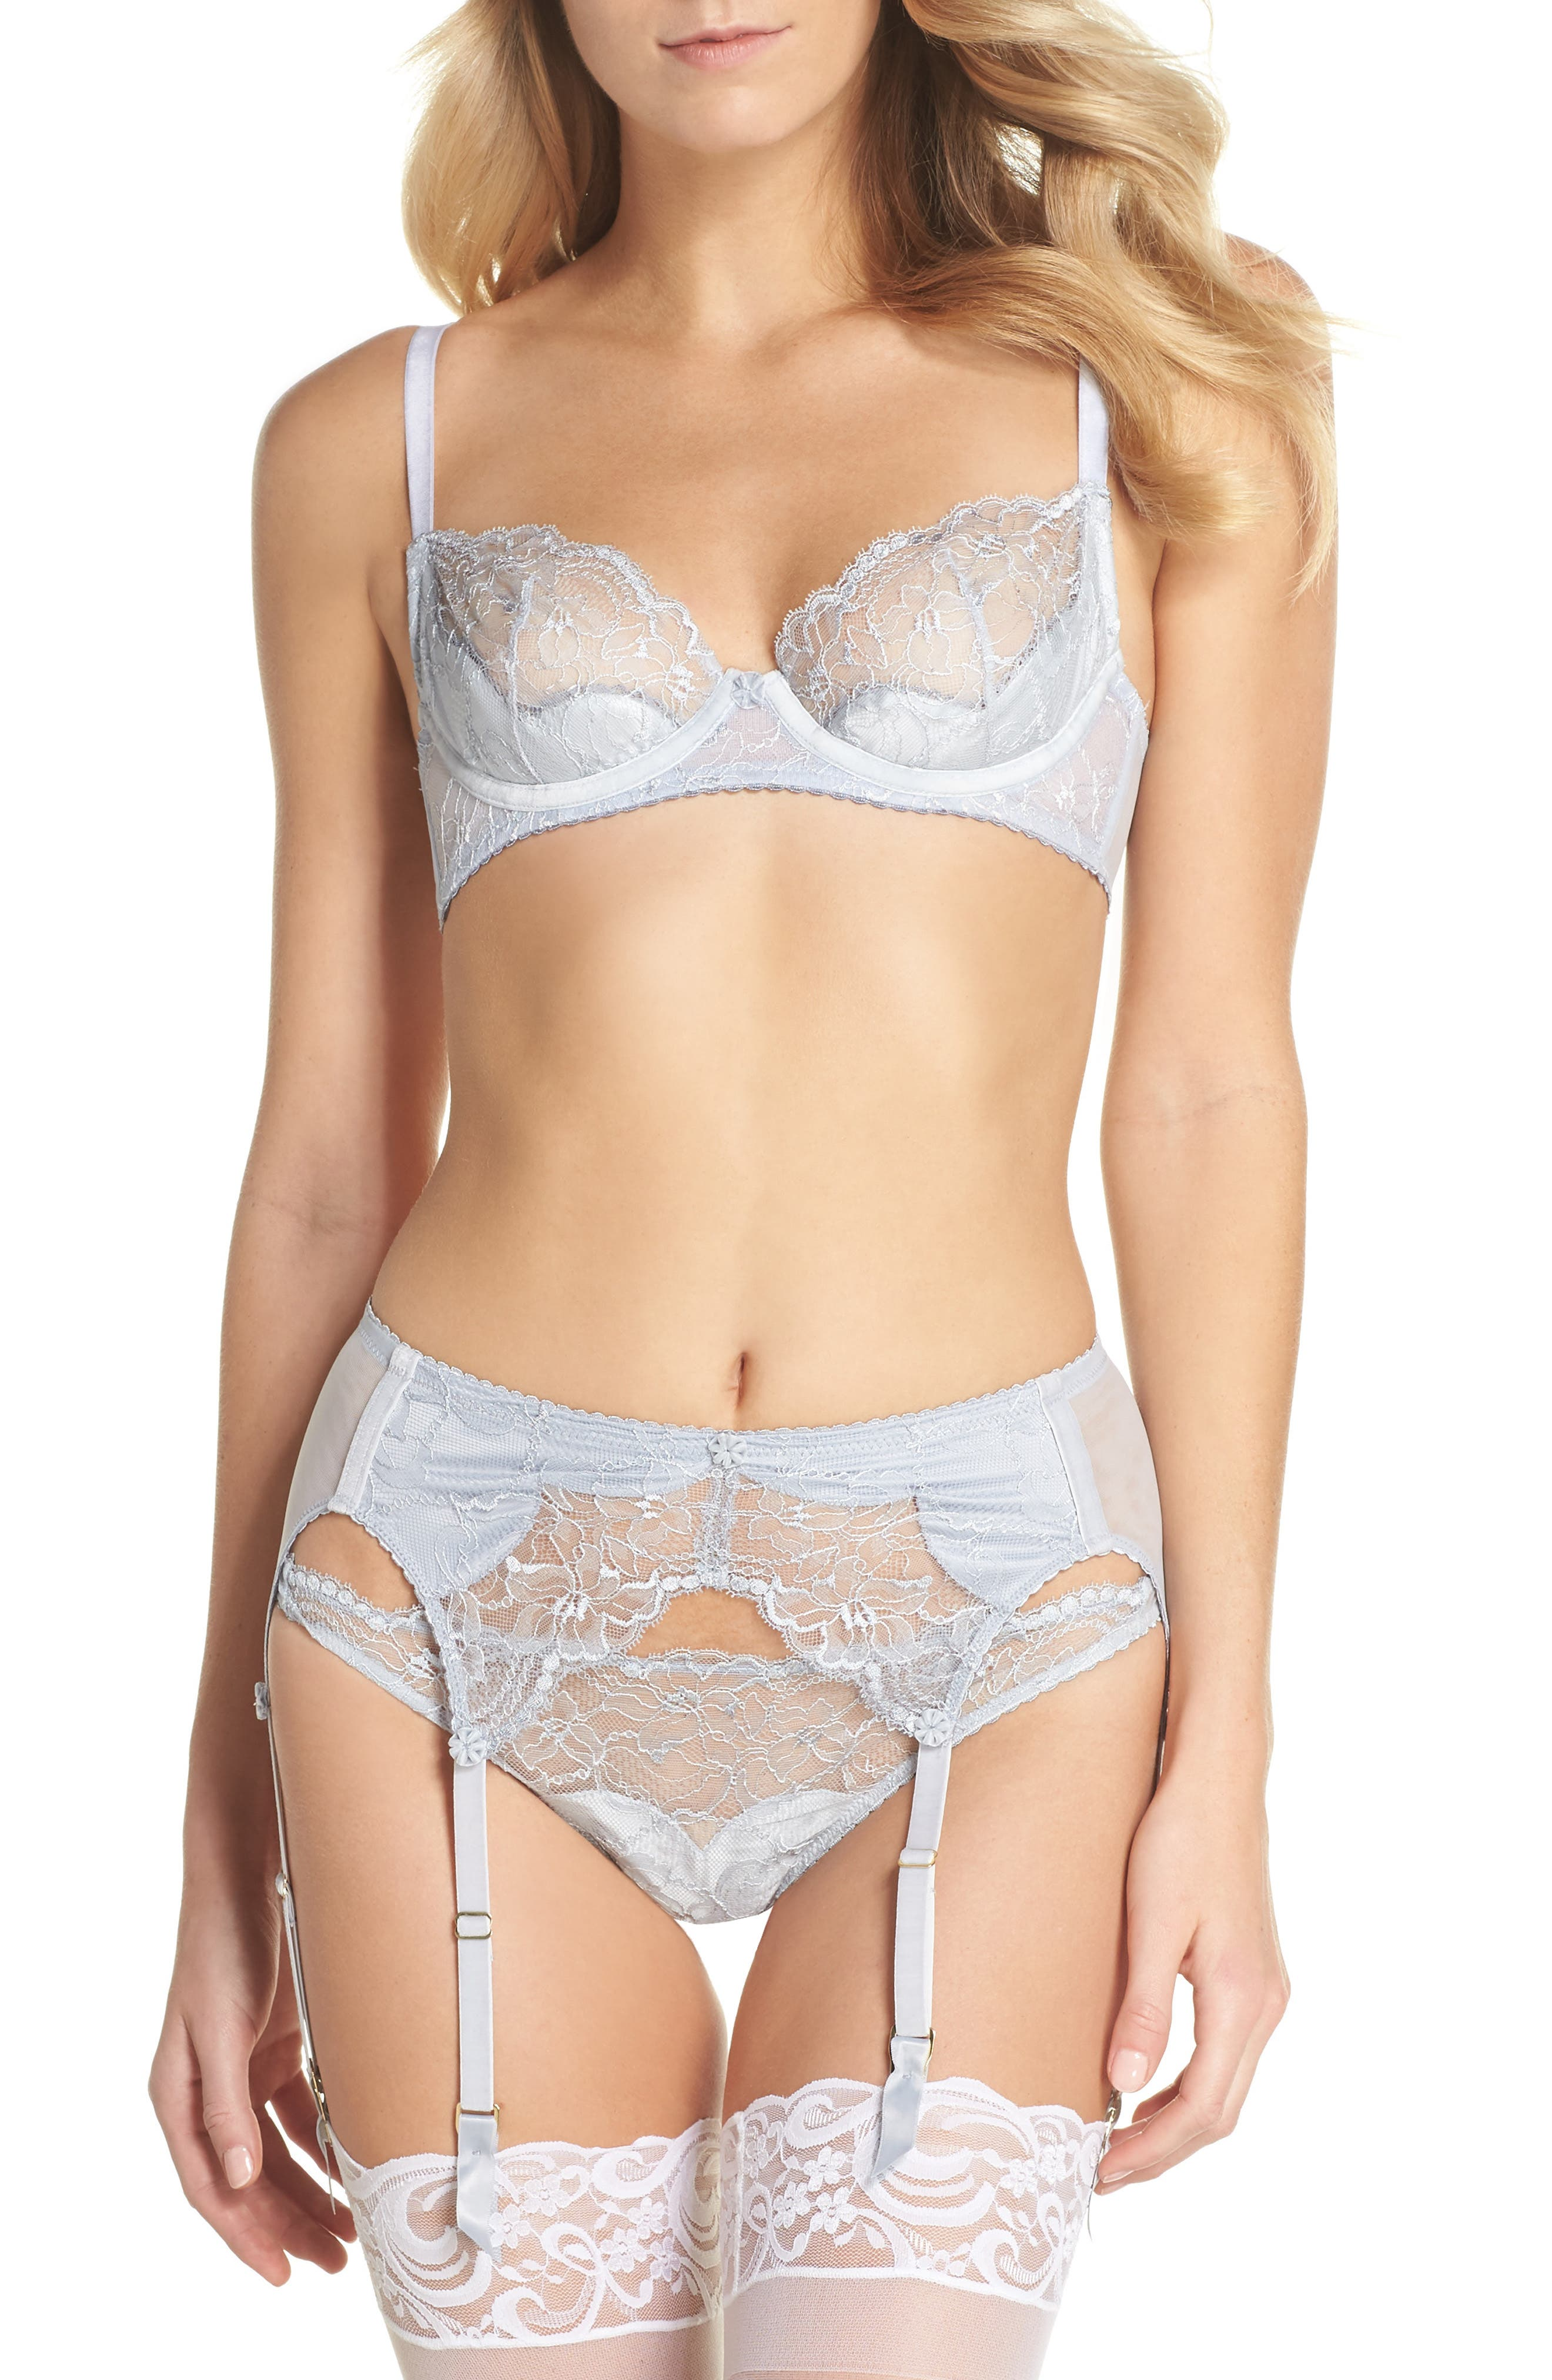 Tryst G-String Thong,                             Alternate thumbnail 7, color,                             020